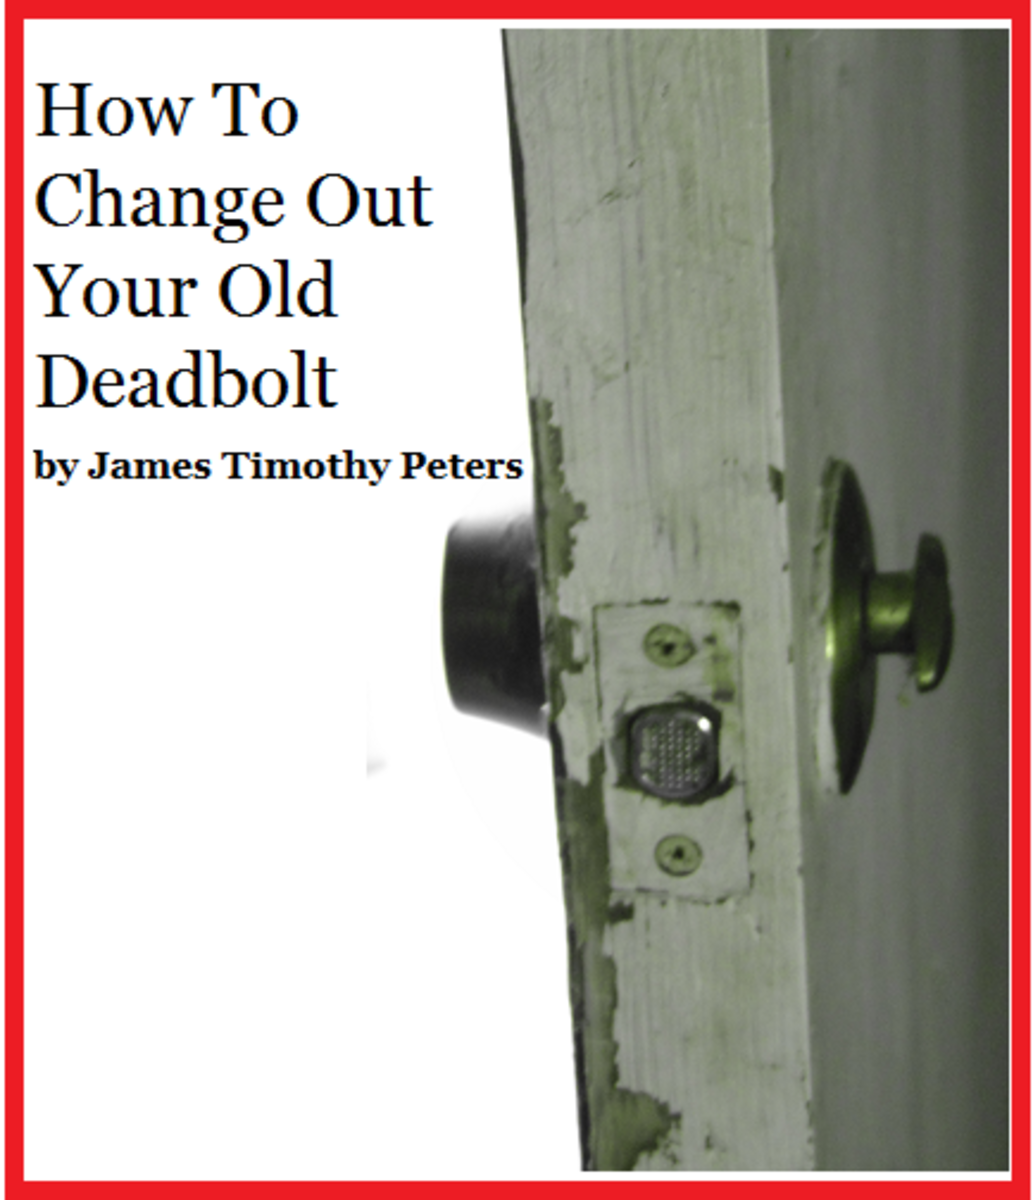 Replacing a deadbolt lock is easier than you think.